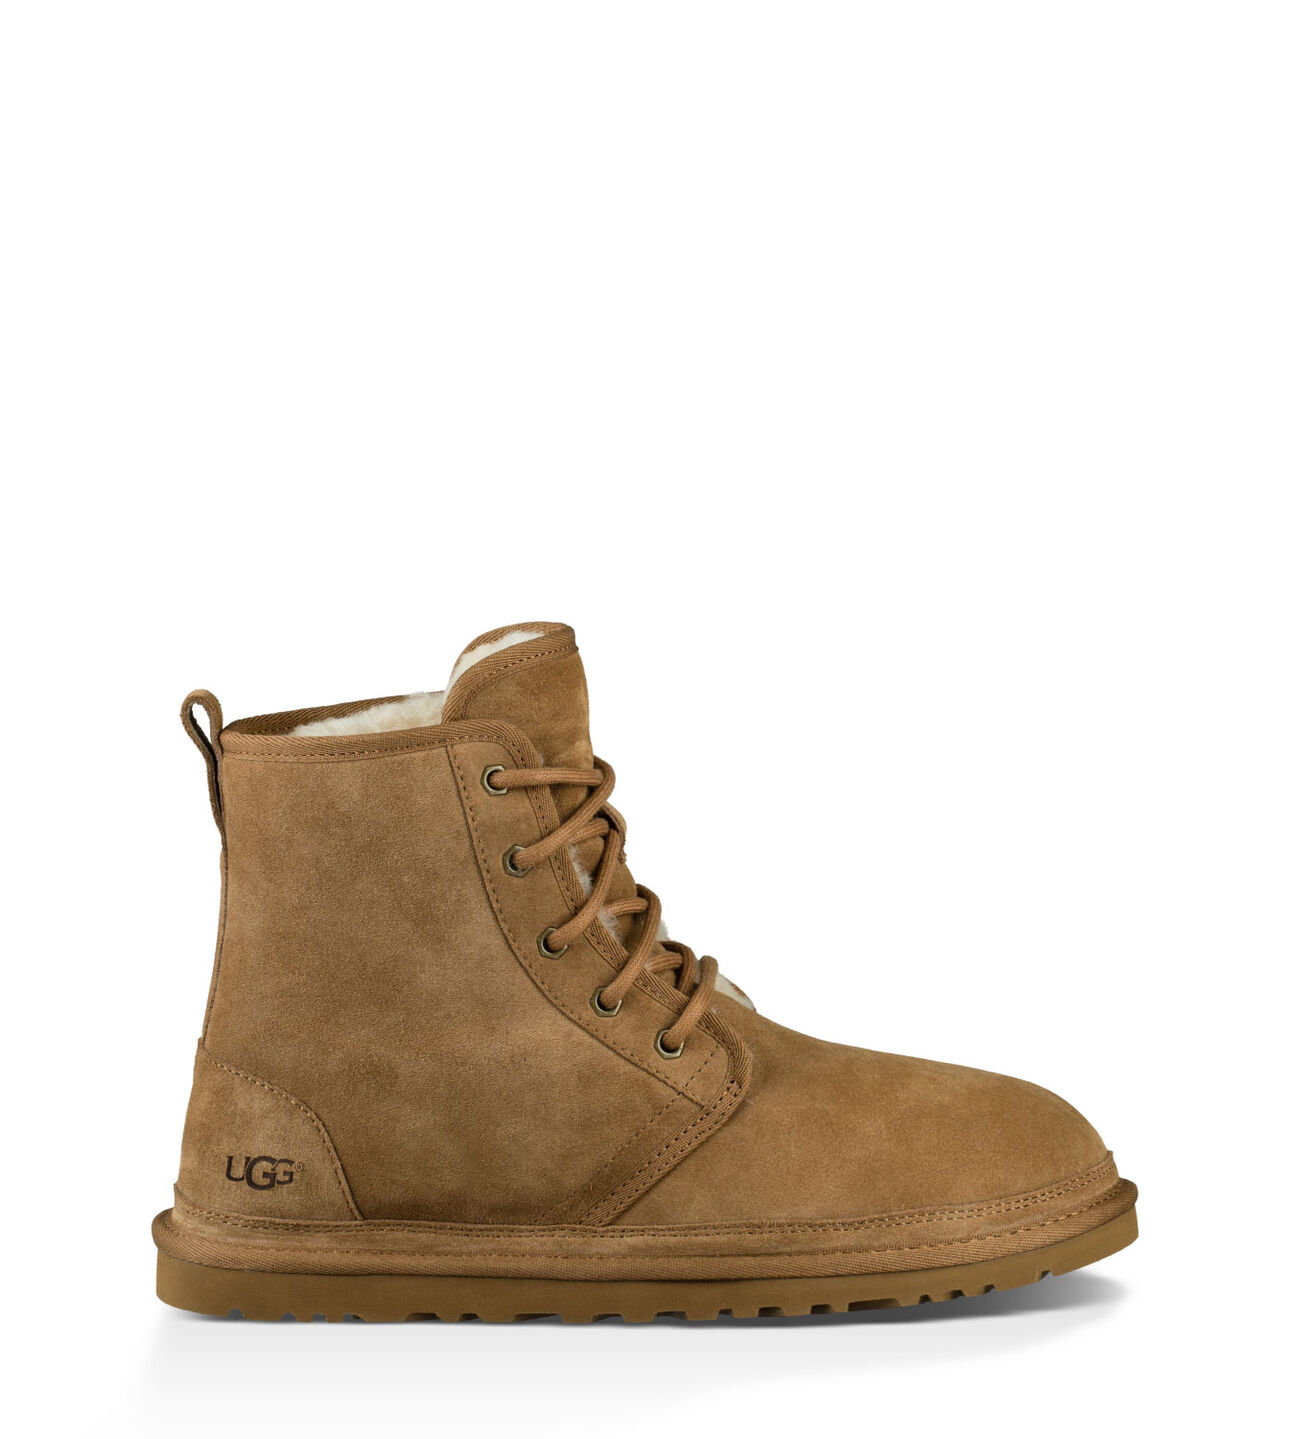 Mens Uggs Shoes Boot